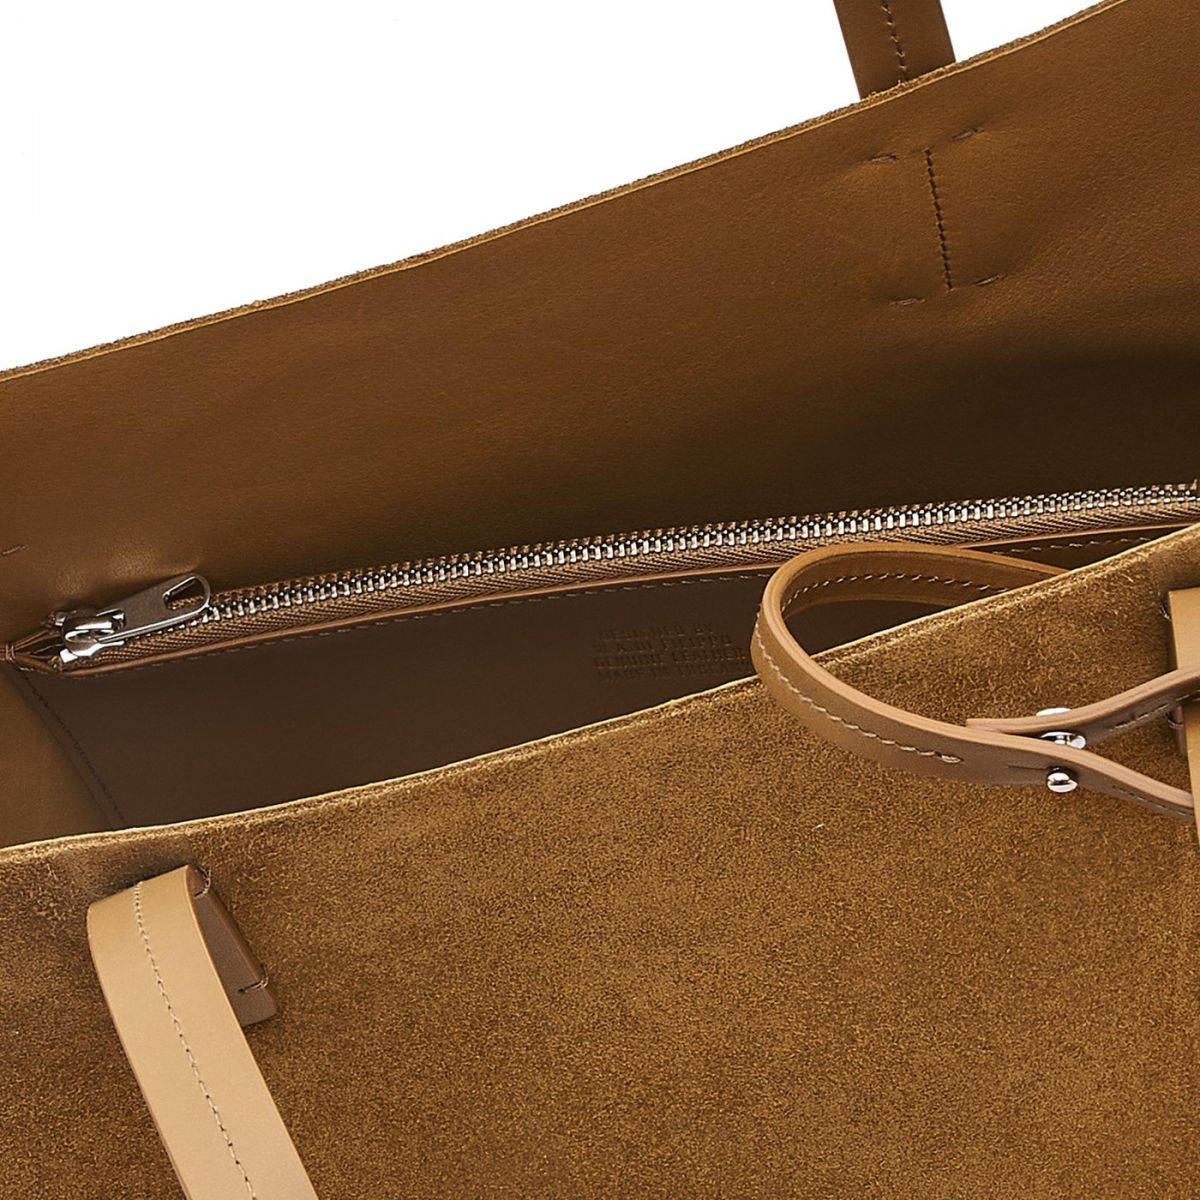 Elba Shopping - Women's Tote Bag in Suede/Calf Leather color Olive - Mediterranea line BTO110 | Details